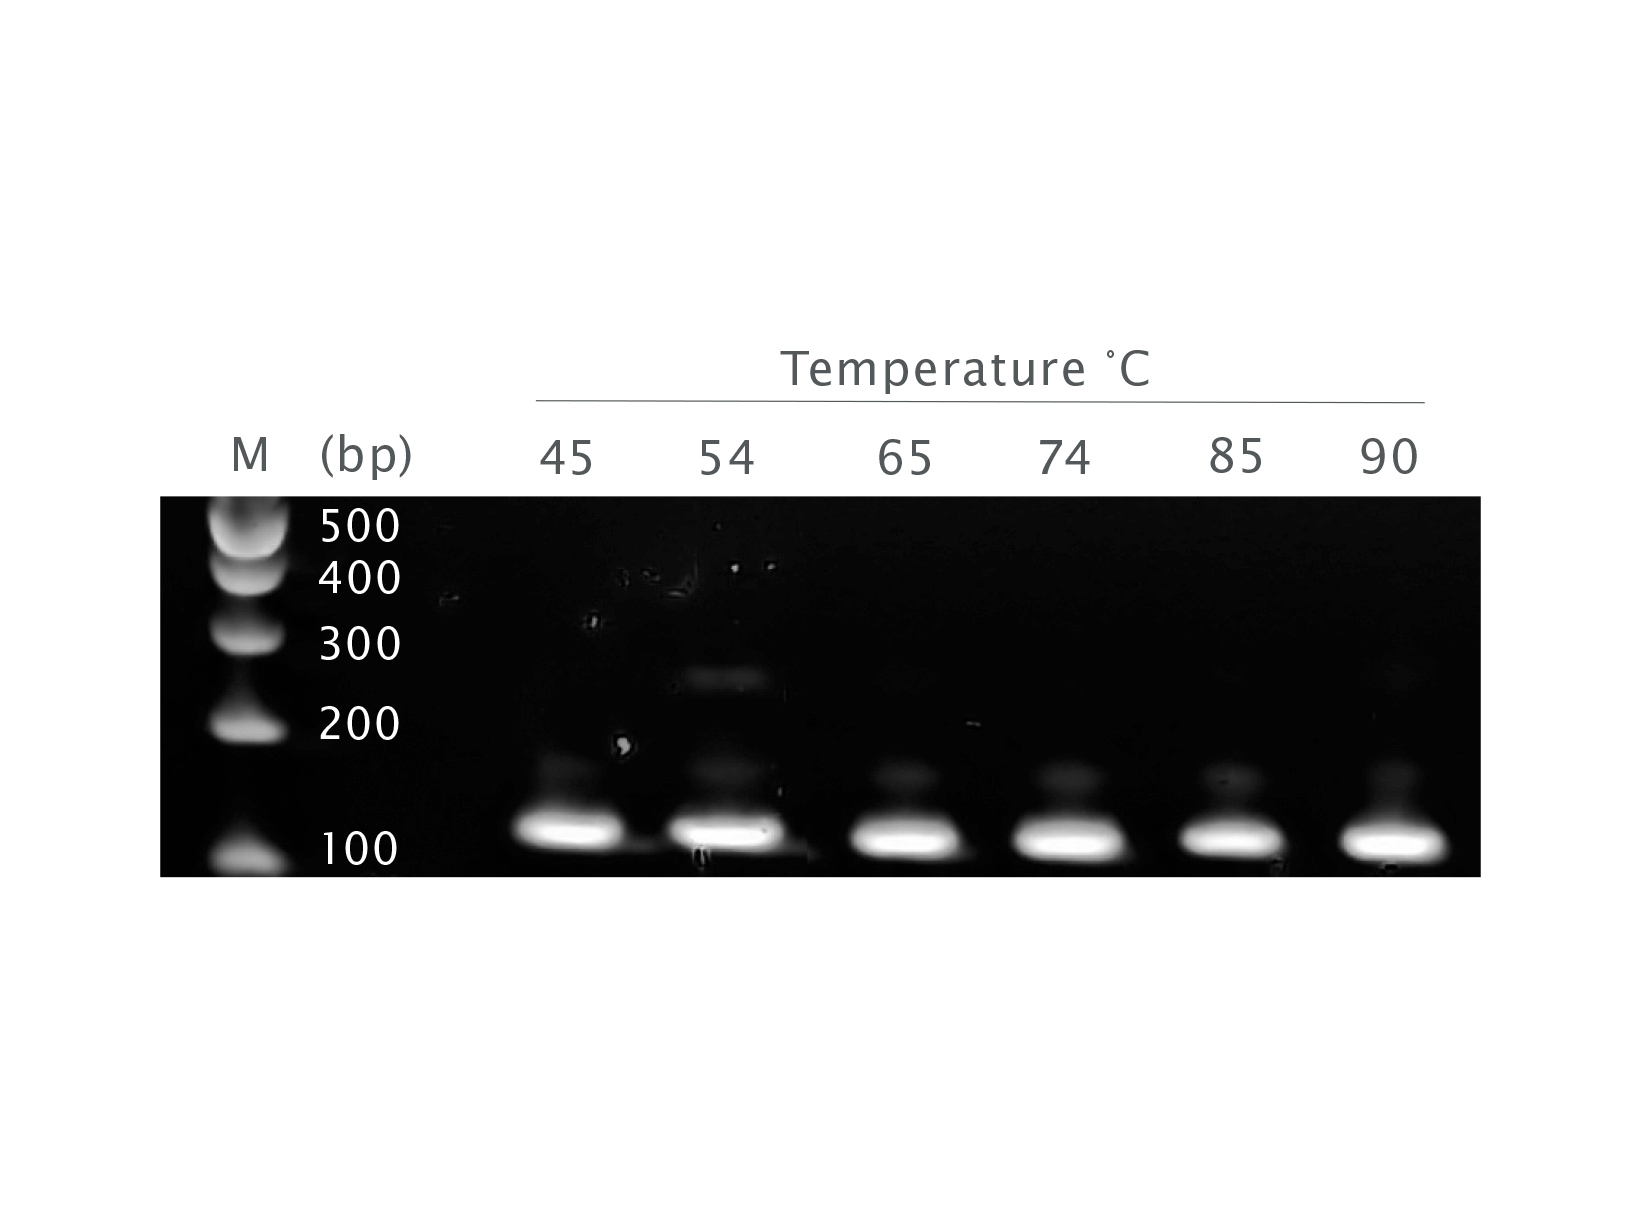 Endpoint gel picture showing UltraScript 2.0 giving a similar amounts of product across a wide range of temperatures, up to 90 degrees.